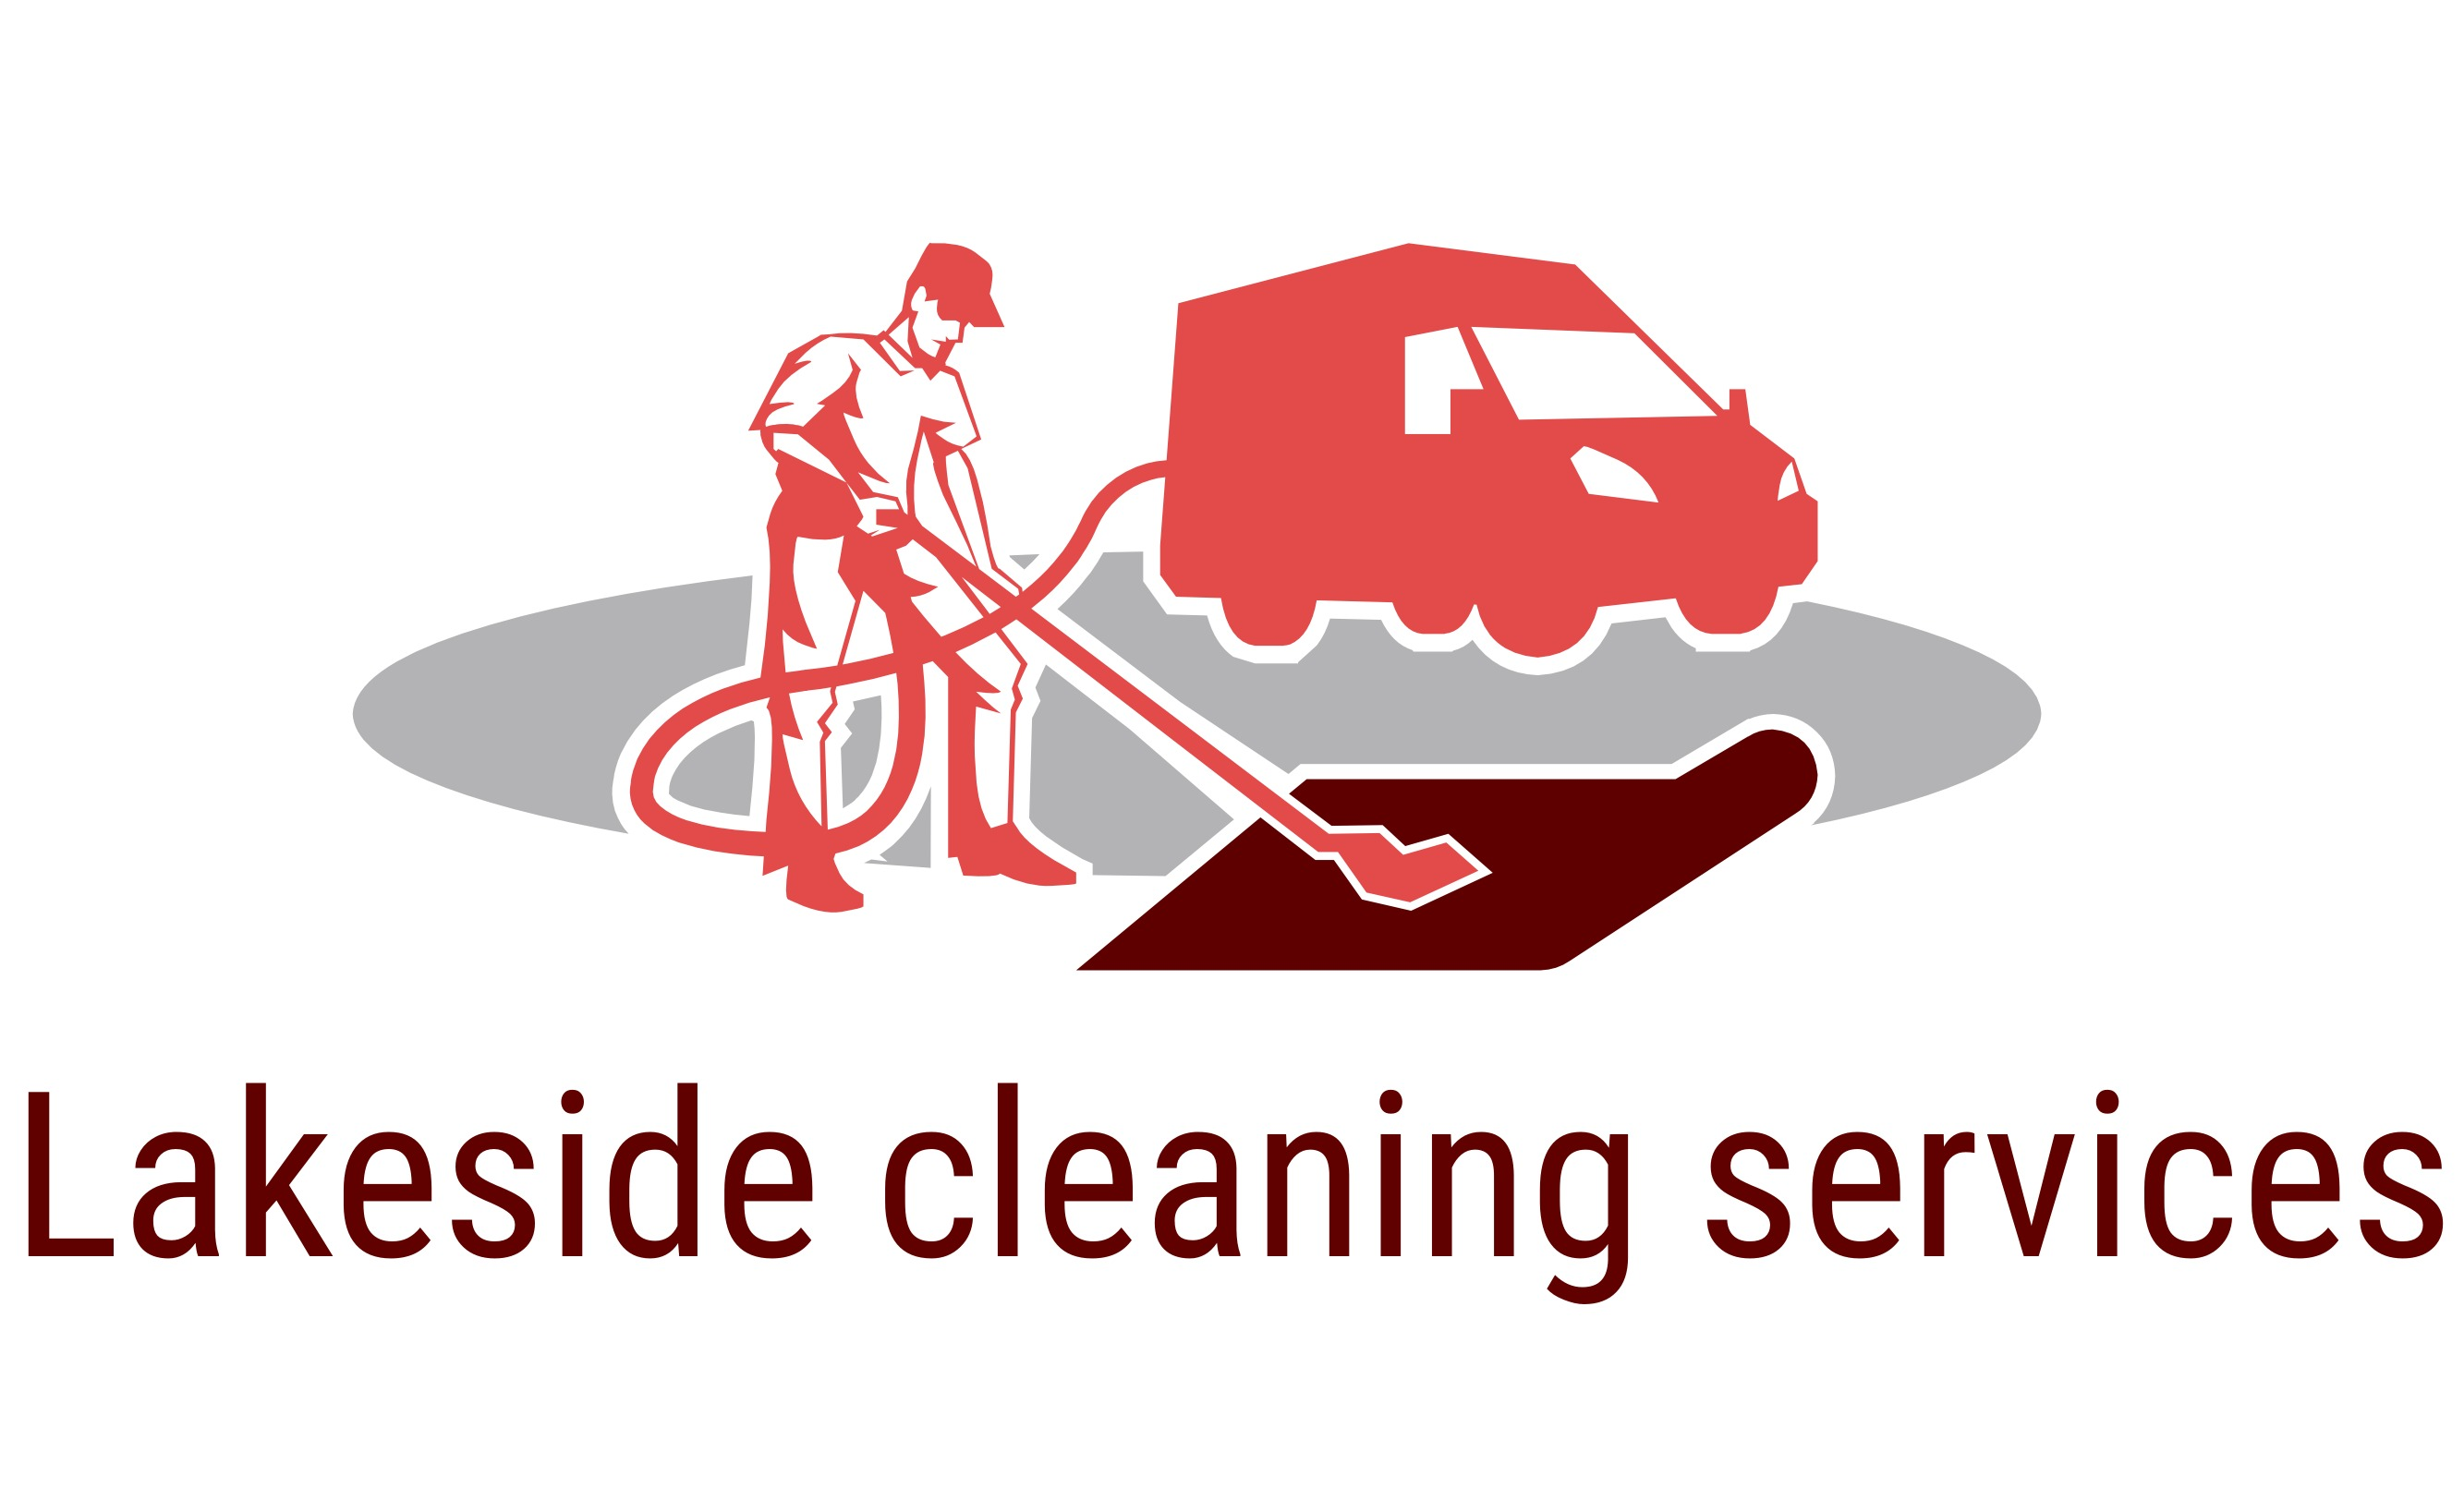 Lakeside Cleaning Services logo